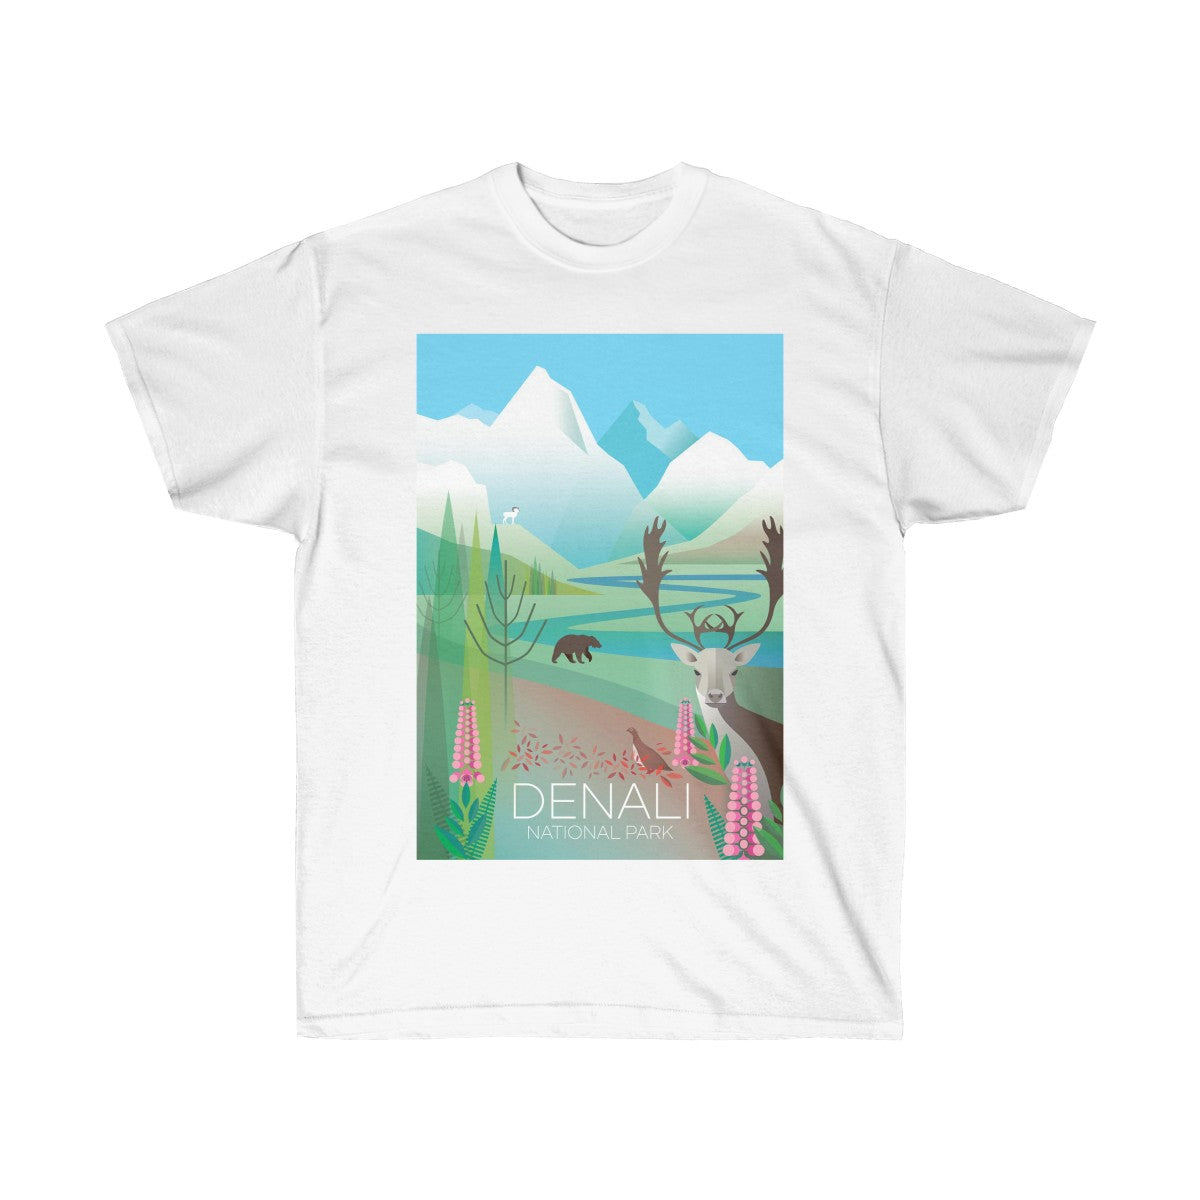 DENALI NATIONAL PARK UNISEX ULTRA COTTON TEE